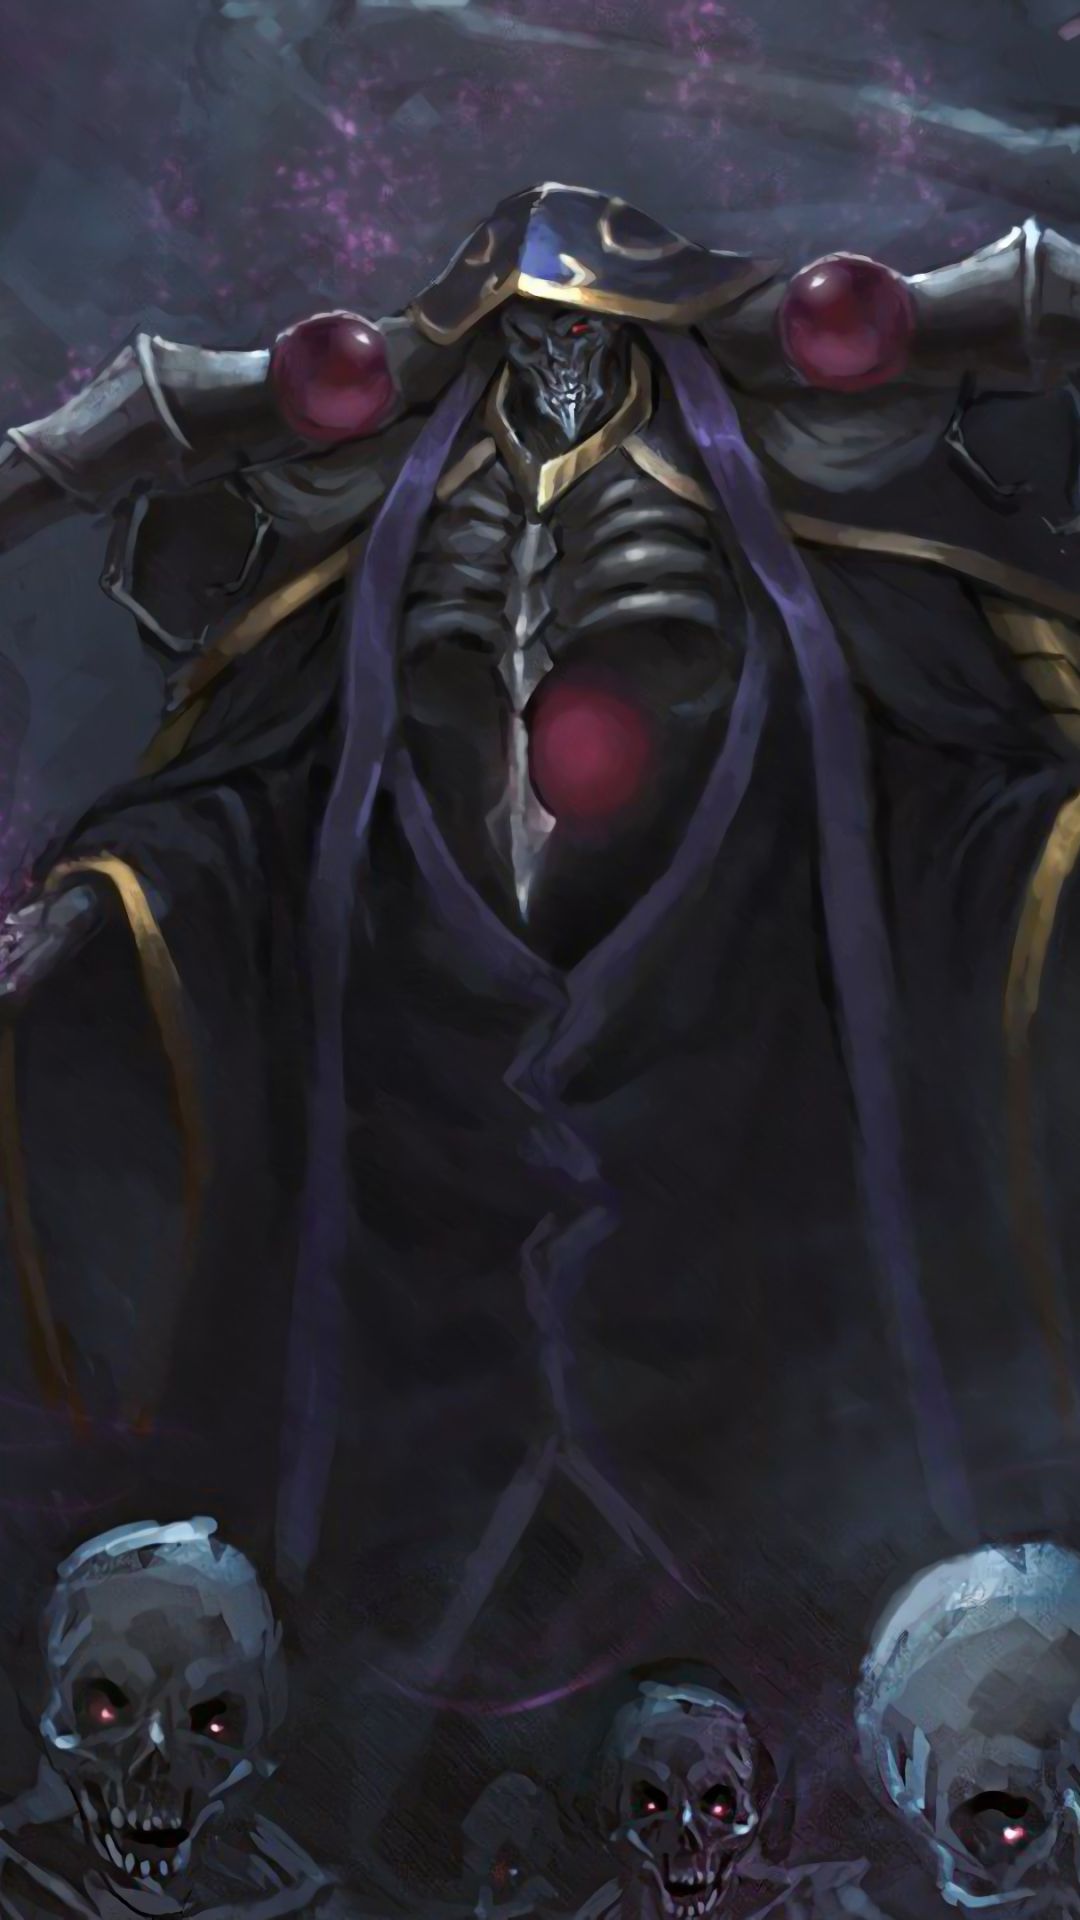 Anime Overlord 1080x1920 Wallpaper Id 736835 Mobile Abyss